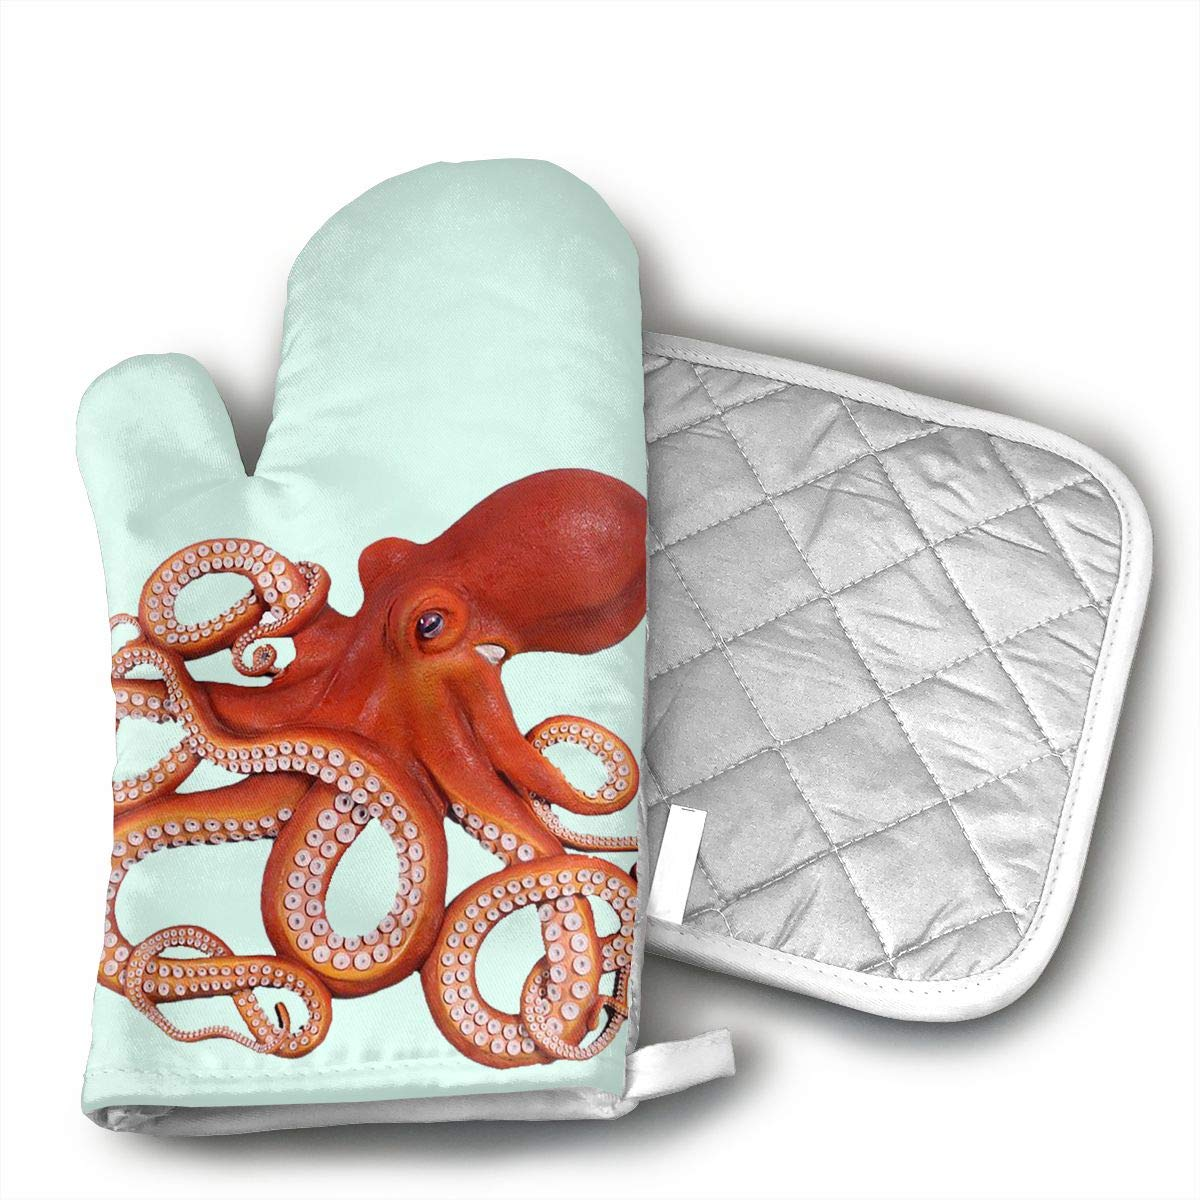 Octopus Set of Oven Mitt and Pot Holder, Microwave Glove Cotton High Heat Resistance Oven Mitts with Disk Pad for Kitchen Cooking Baking